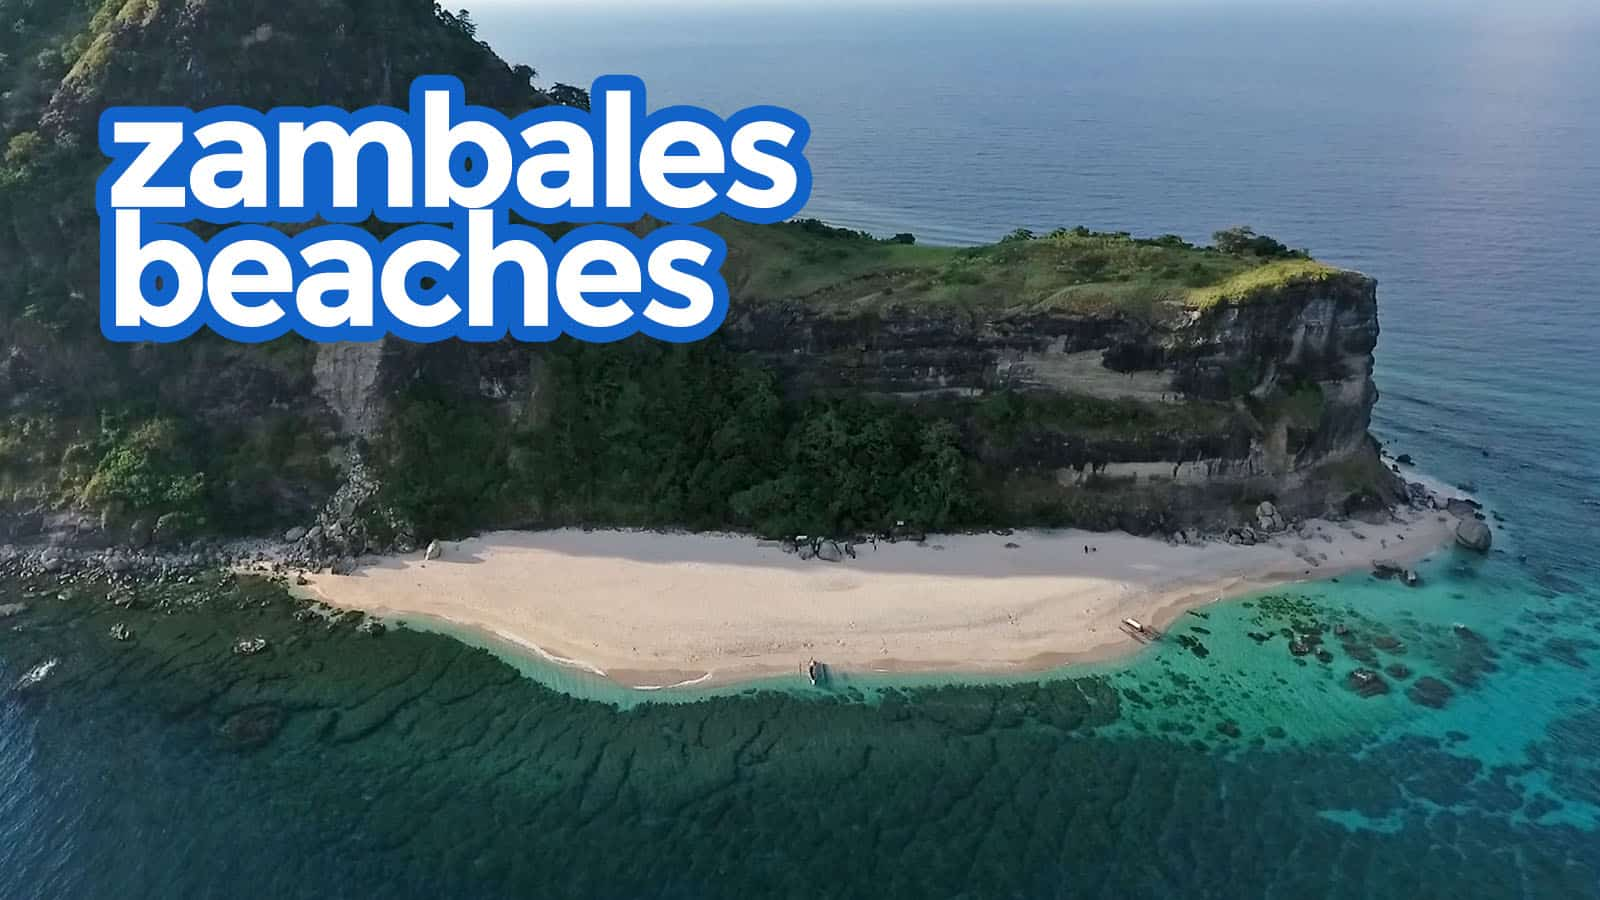 20 BEST ZAMBALES BEACHES AND RESORTS TO VISIT | The Poor